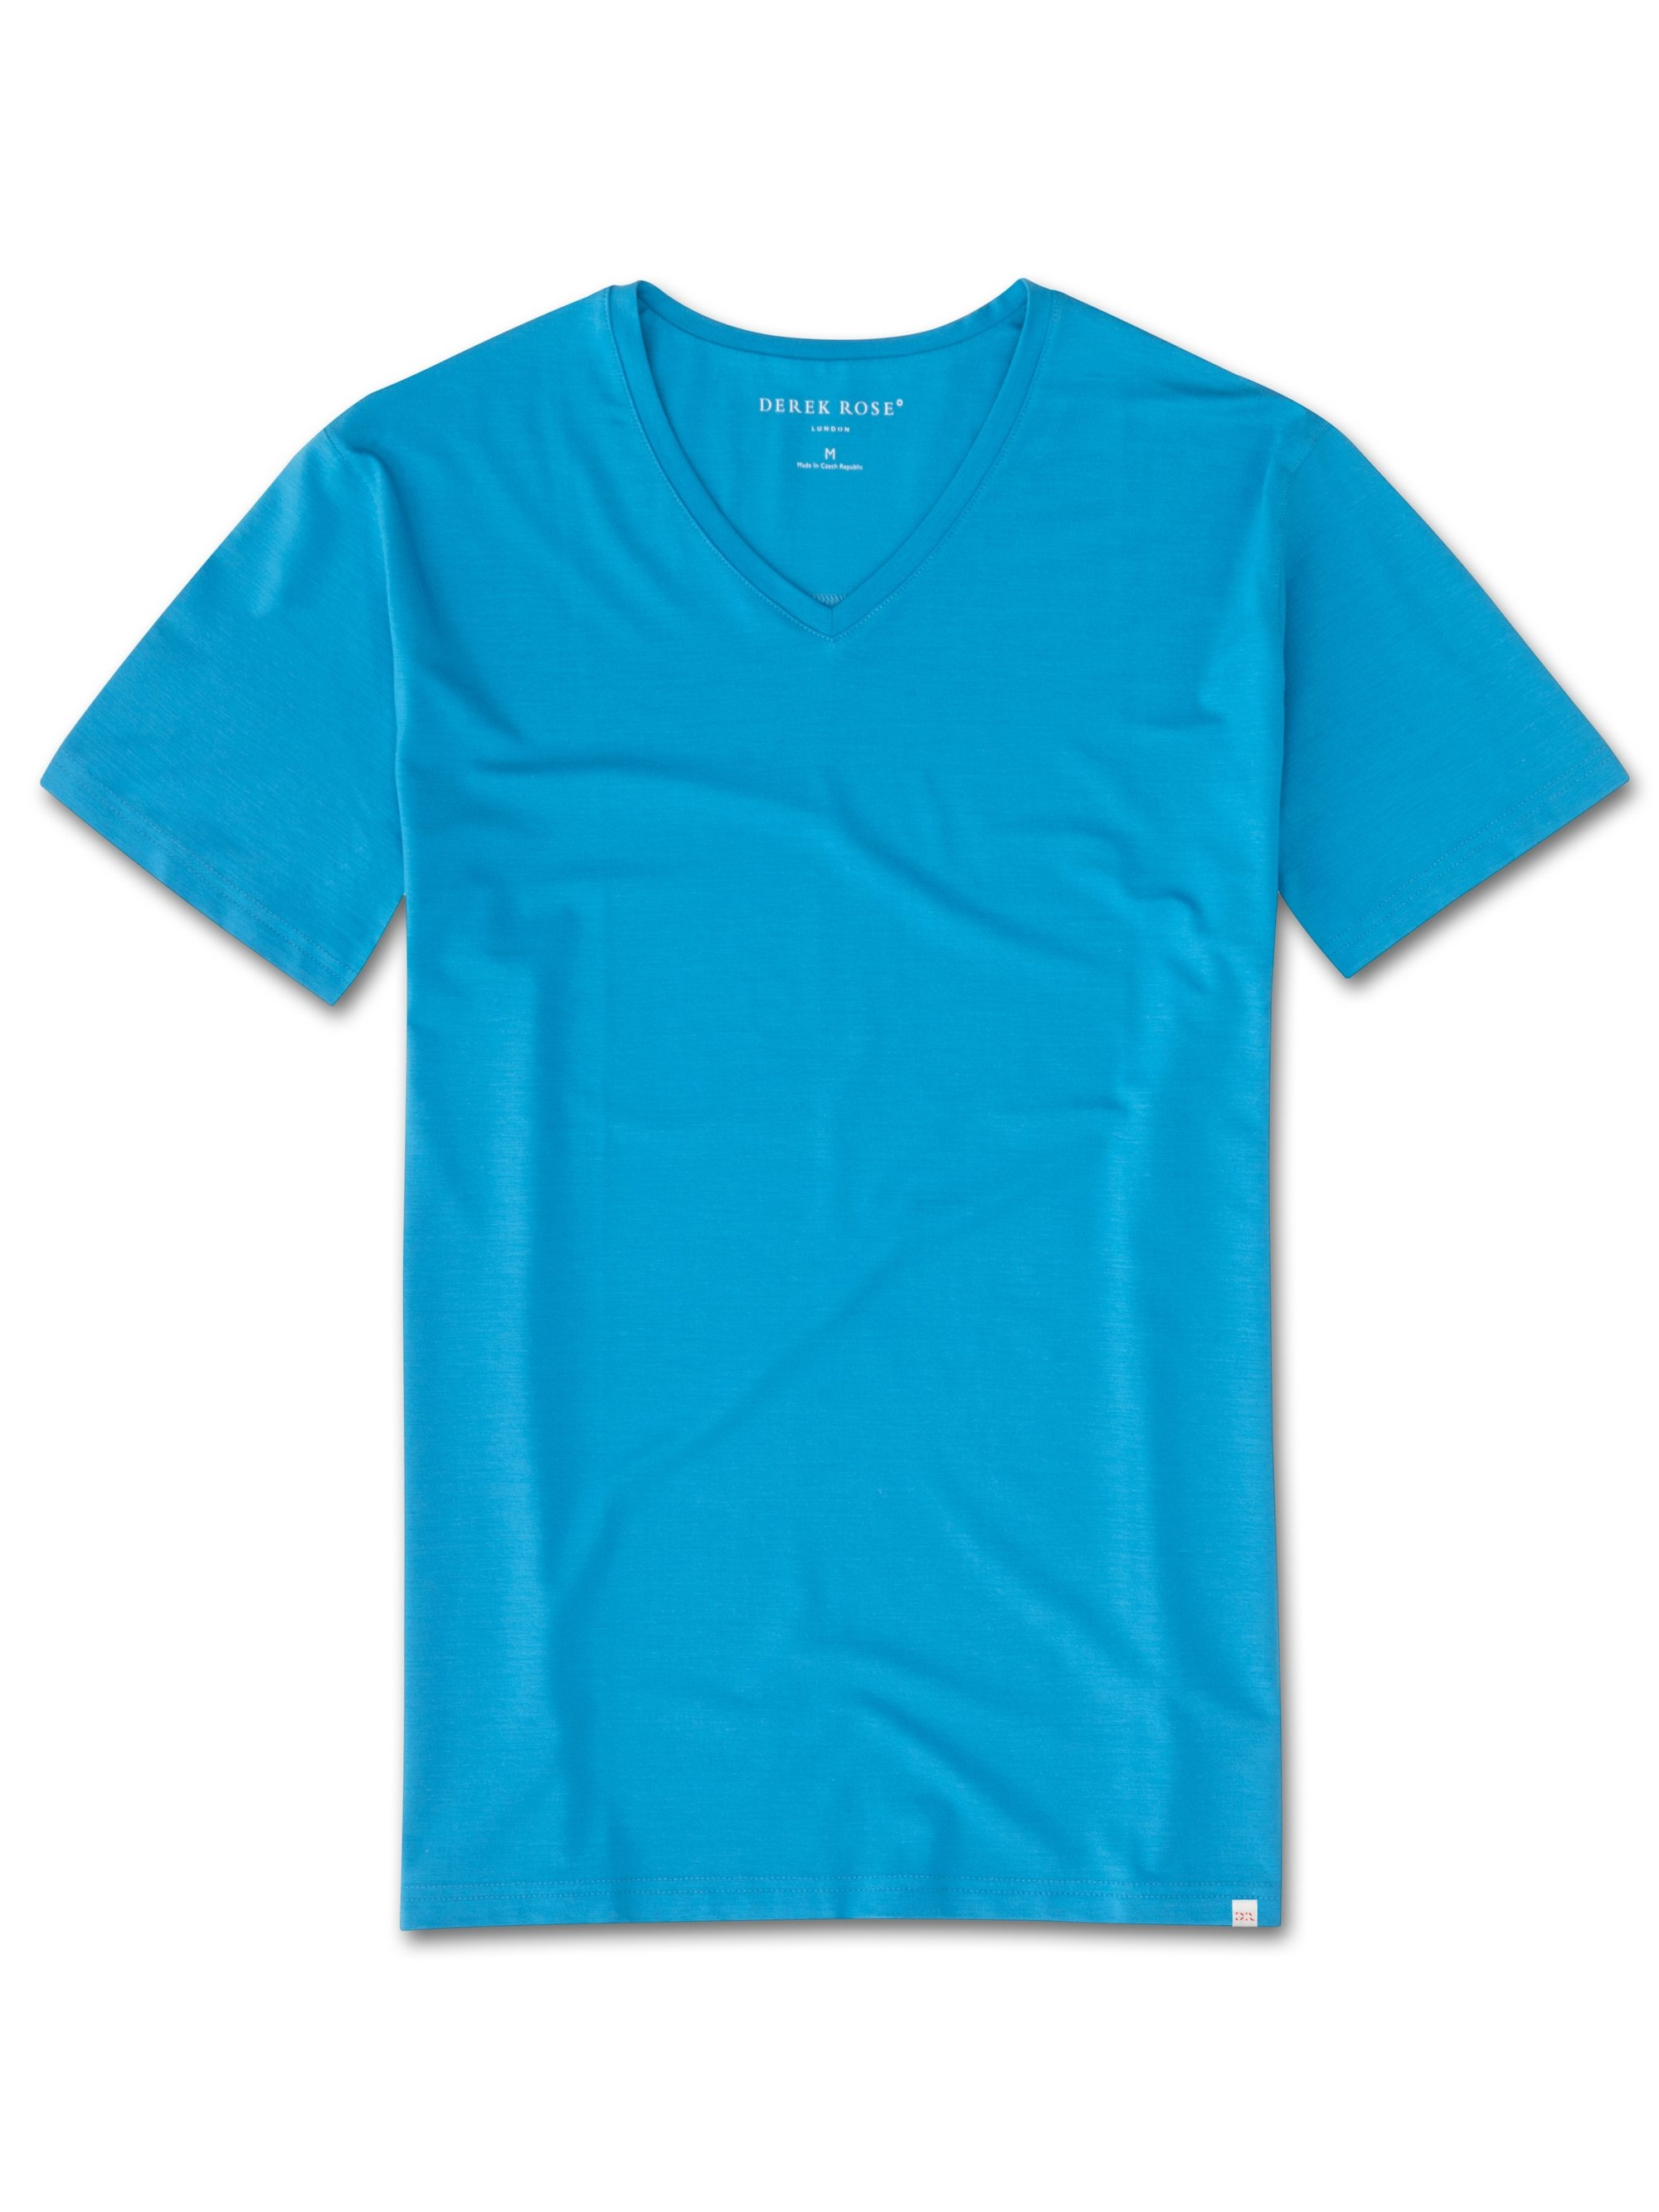 Men's Short Sleeve V-Neck T-Shirt Basel 6 Micro Modal Stretch Blue